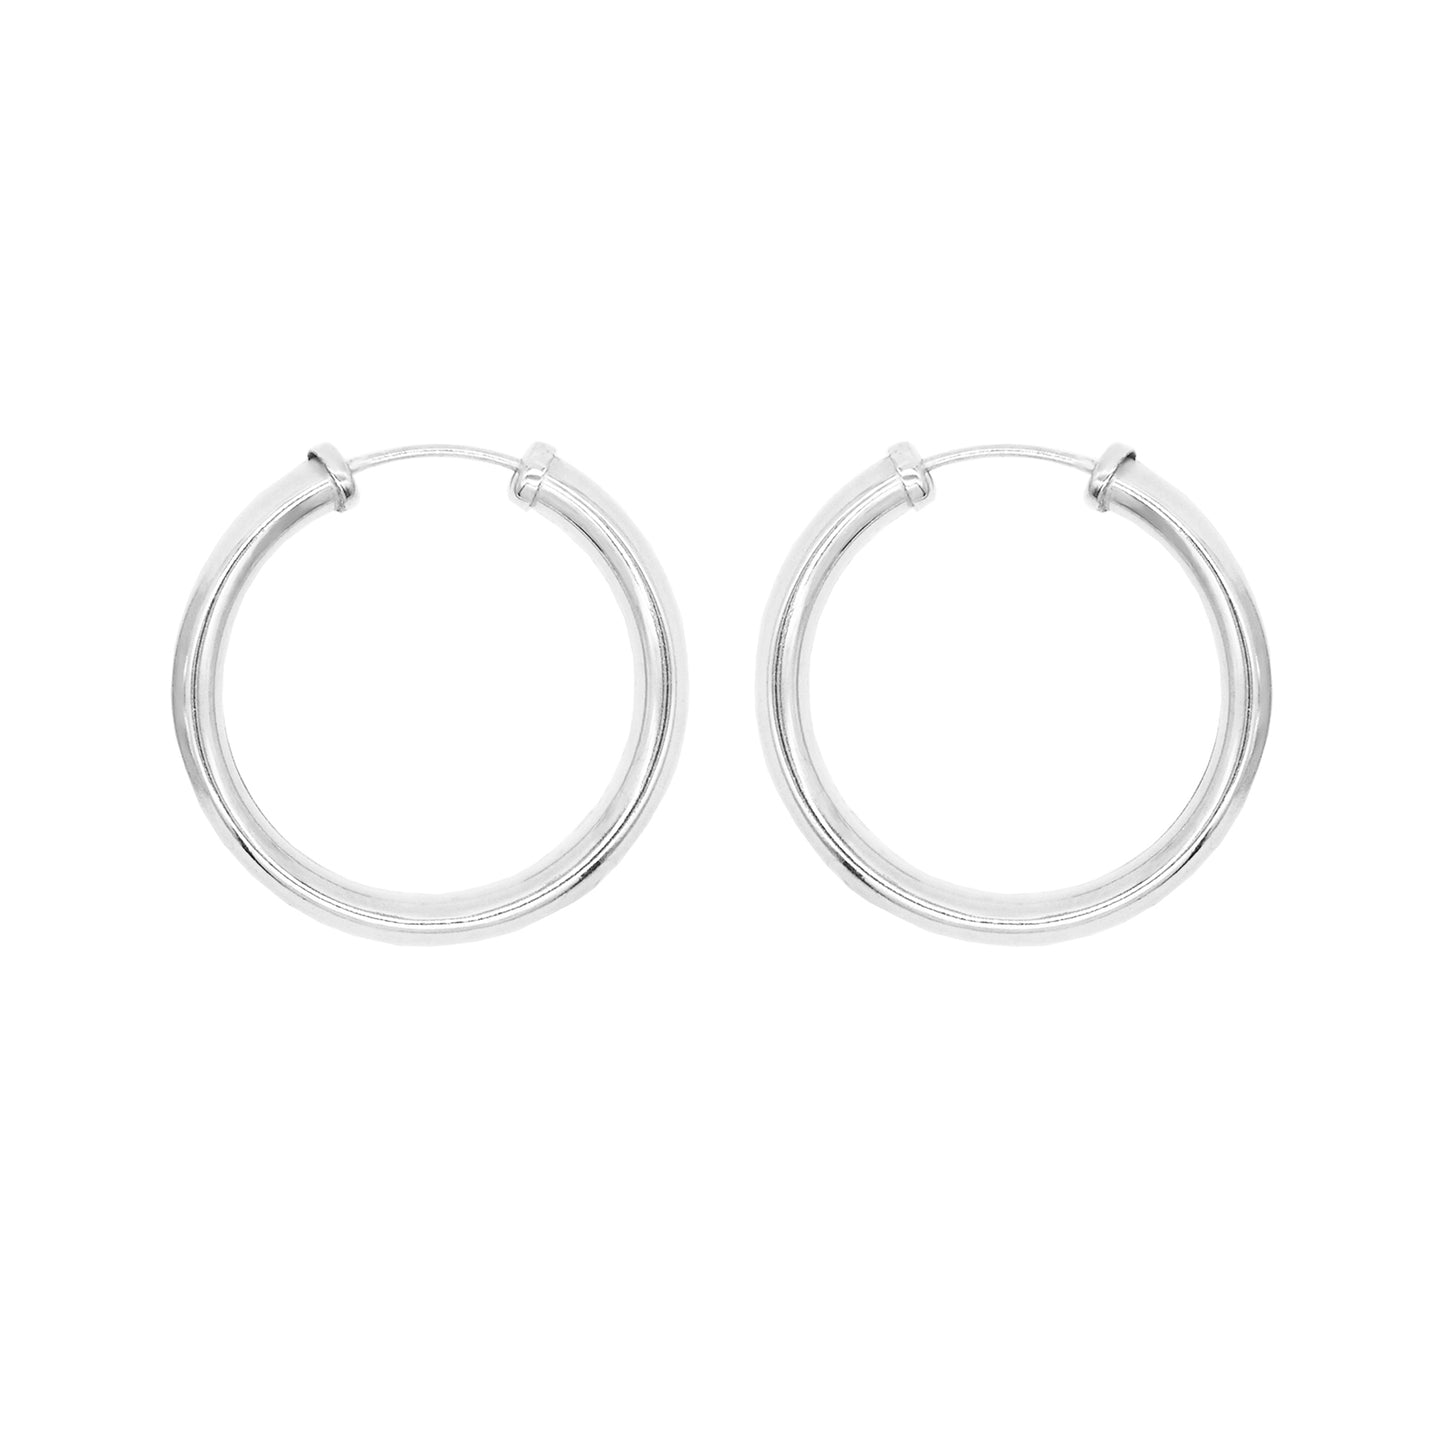 Pair of sterling silver tube hoop earrings with thread through closure. White background.